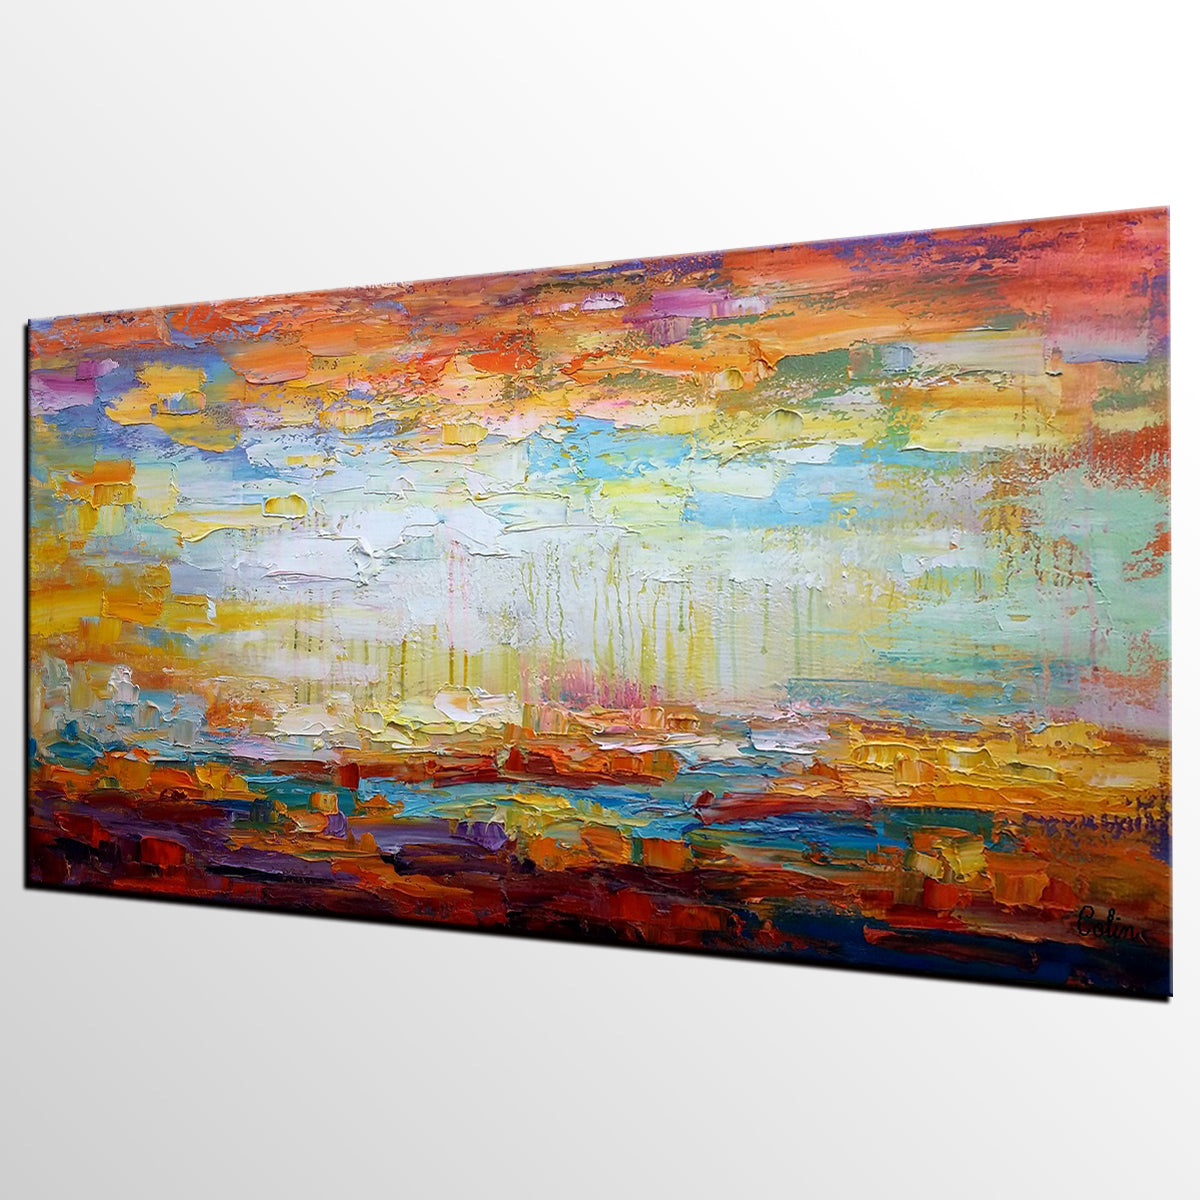 Heavy Texture Art, Abstract Painting, Landscape Painting, Original Artwork, Canvas Painting